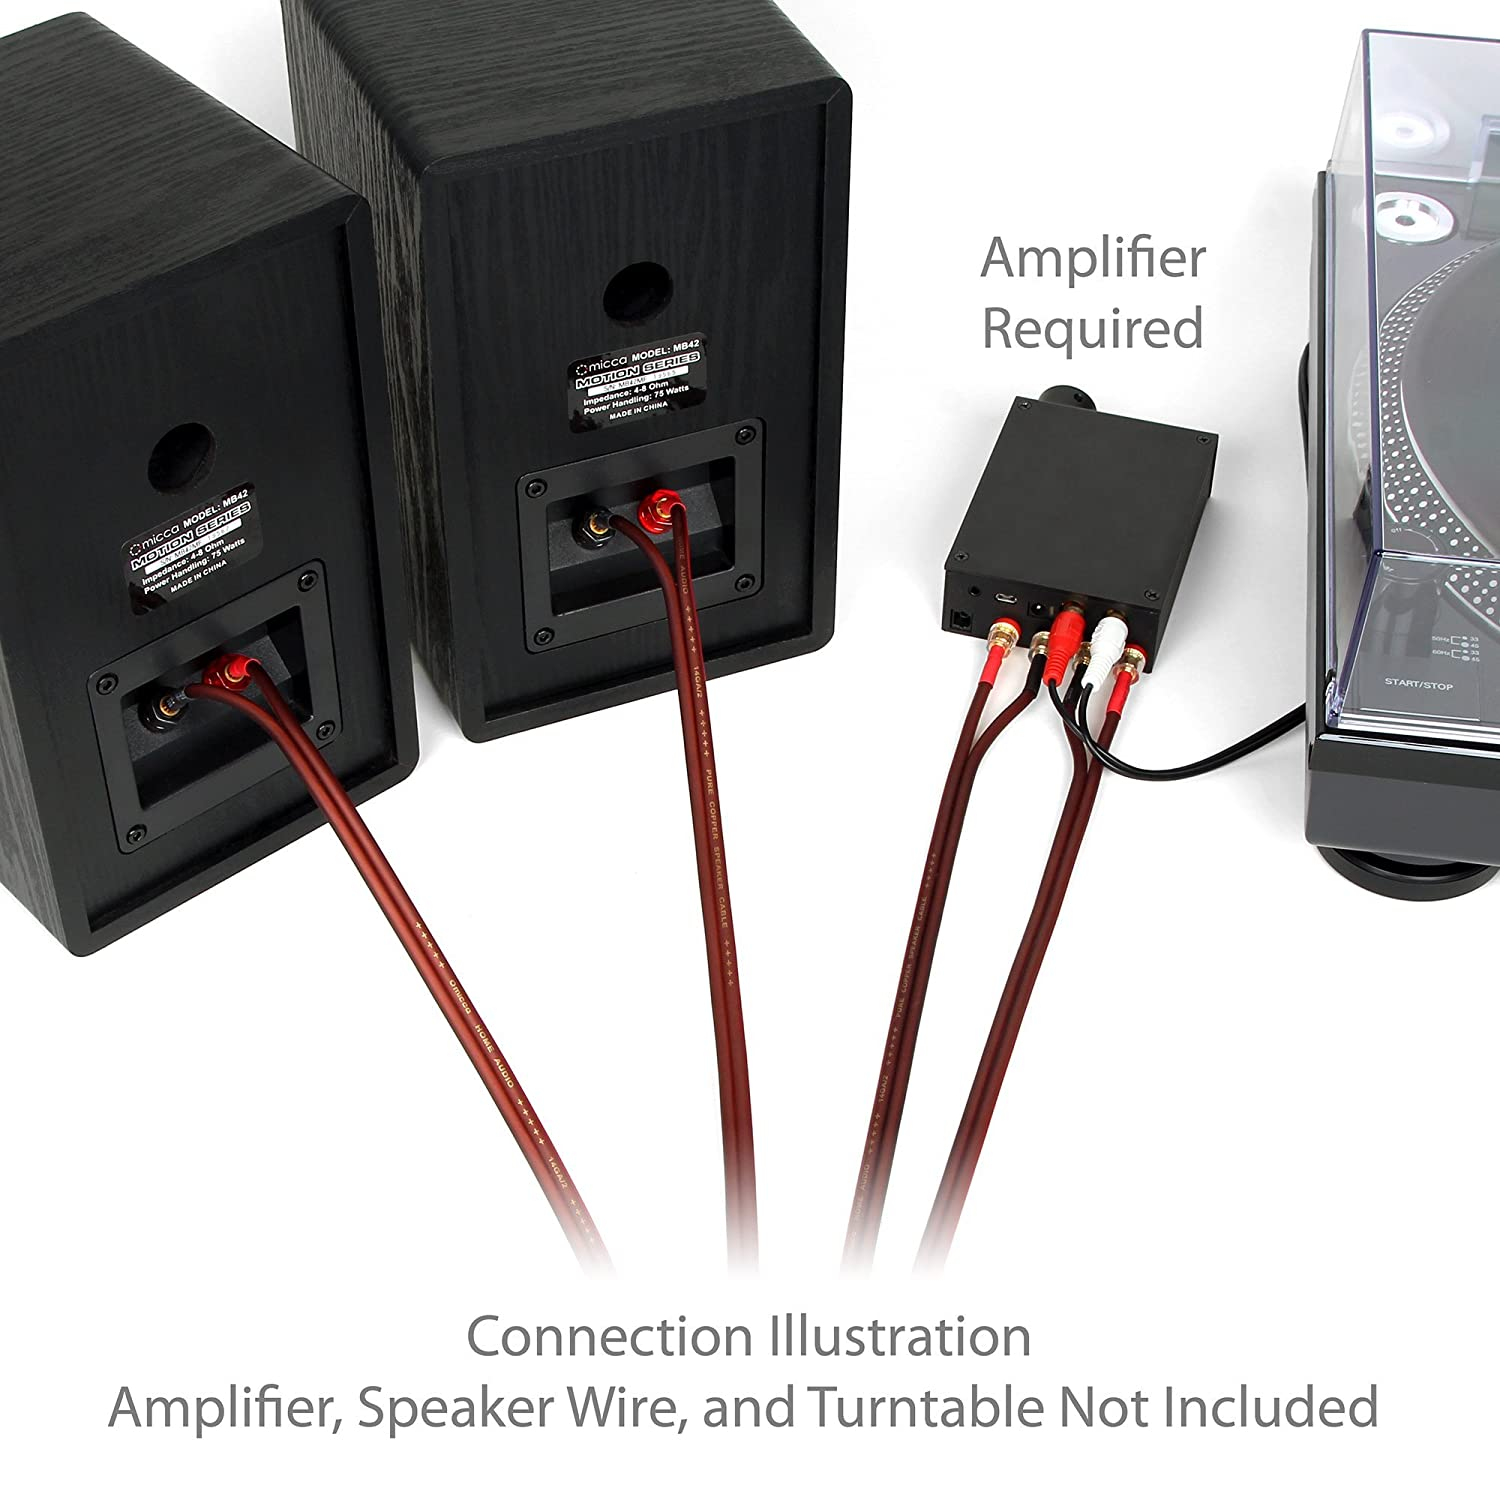 Conventional Bookshelf Speakers Often Offer Simple Analogue Outputs To Connect Your TV Or PC However Since The Rising Popularity Of Wireless Equipment